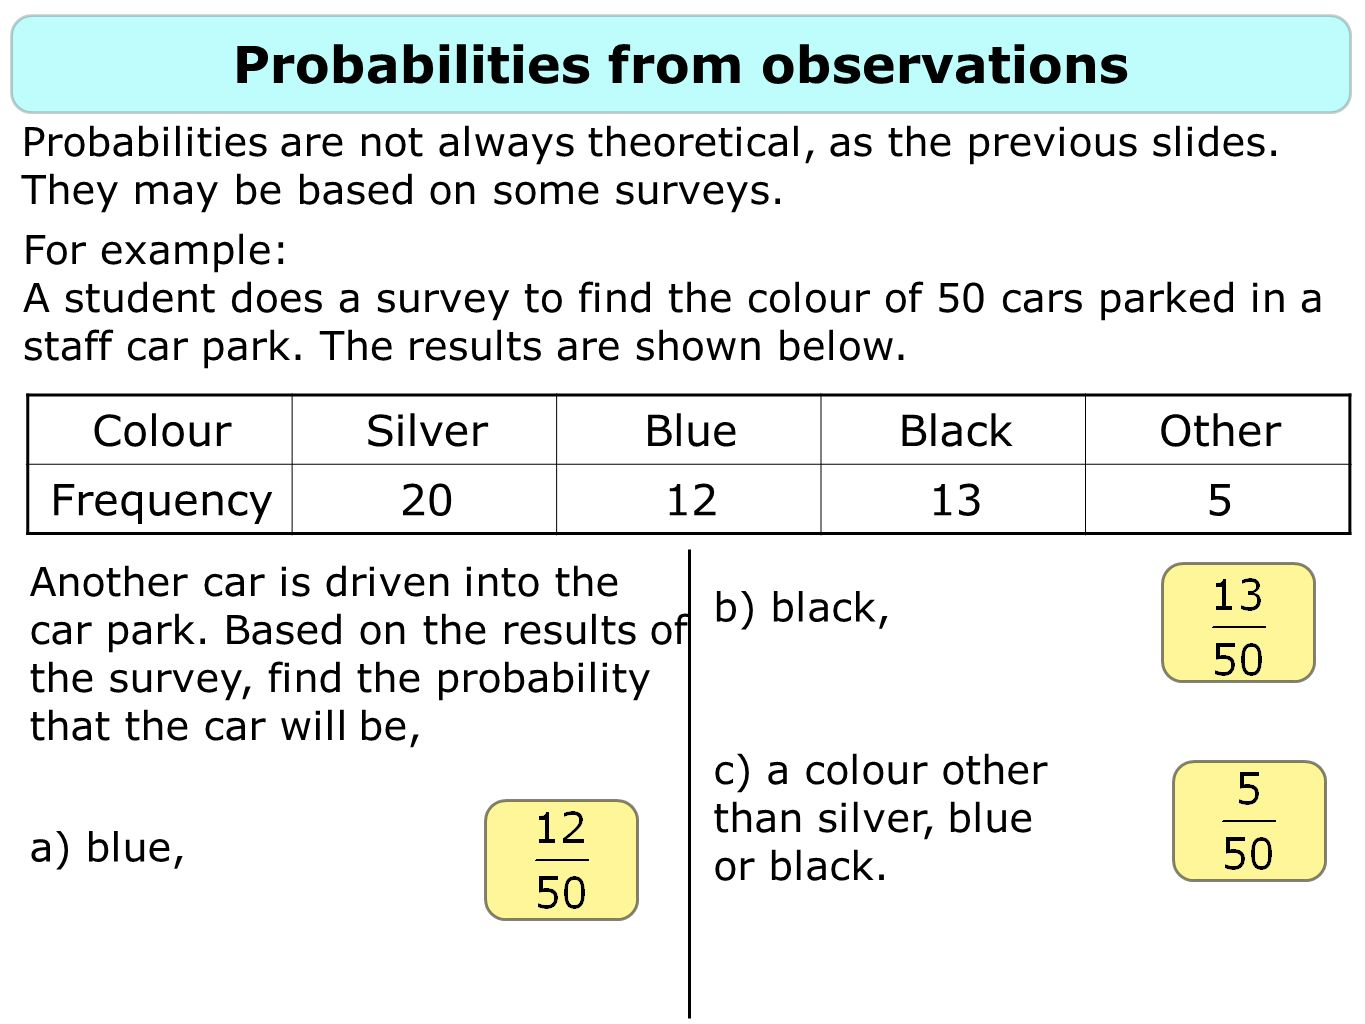 Probabilities from observations